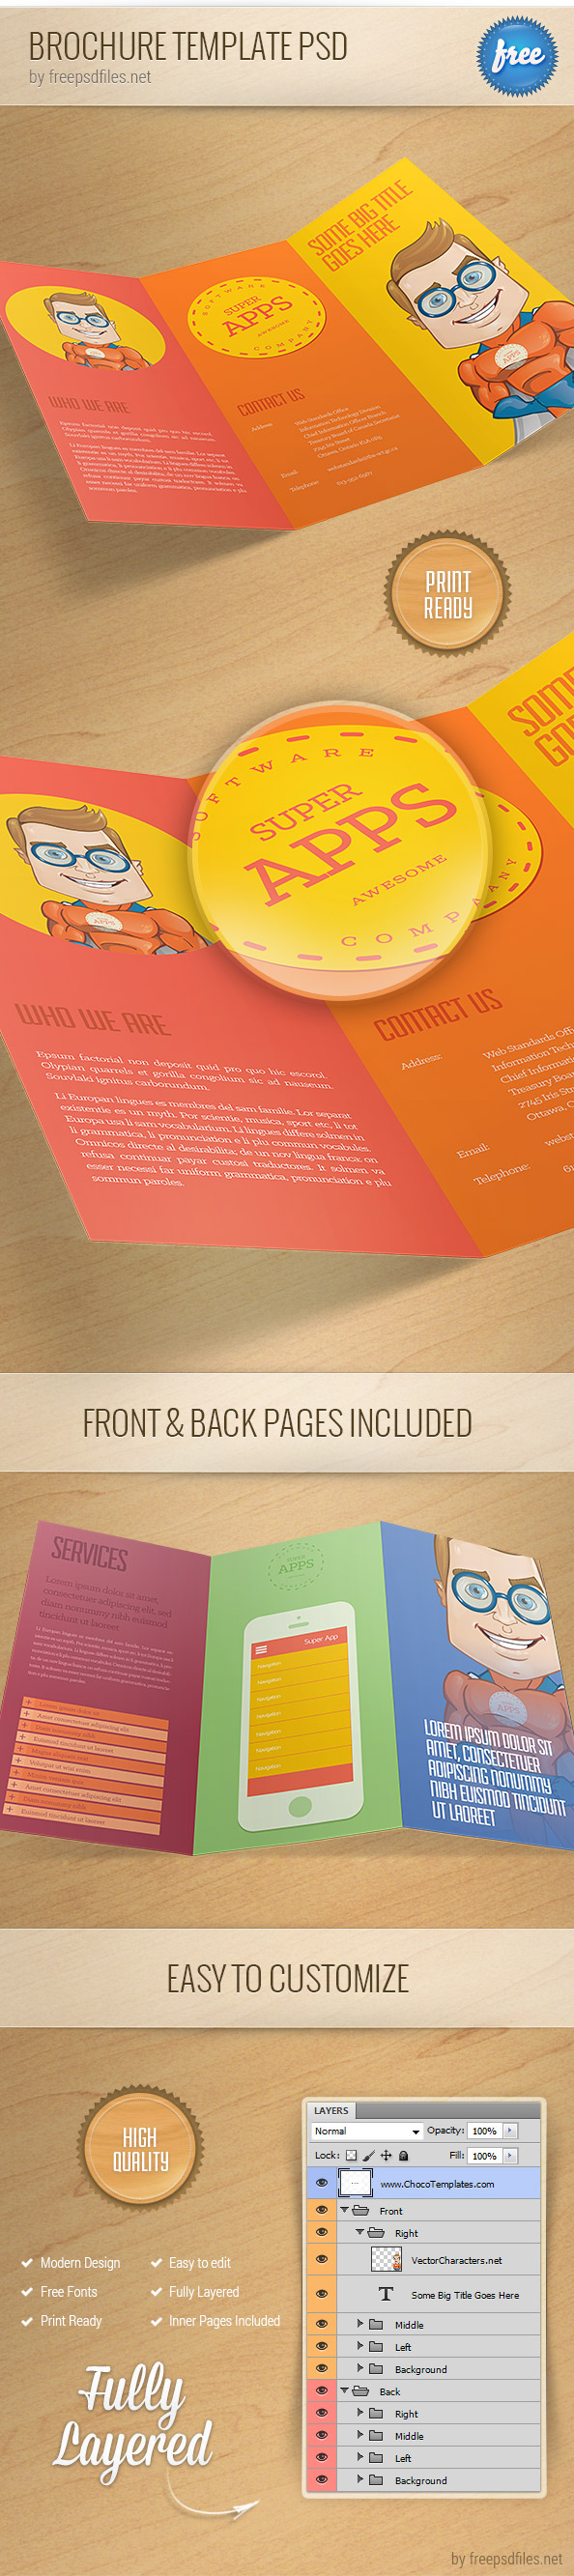 Brochure Template PSD 1 Preview